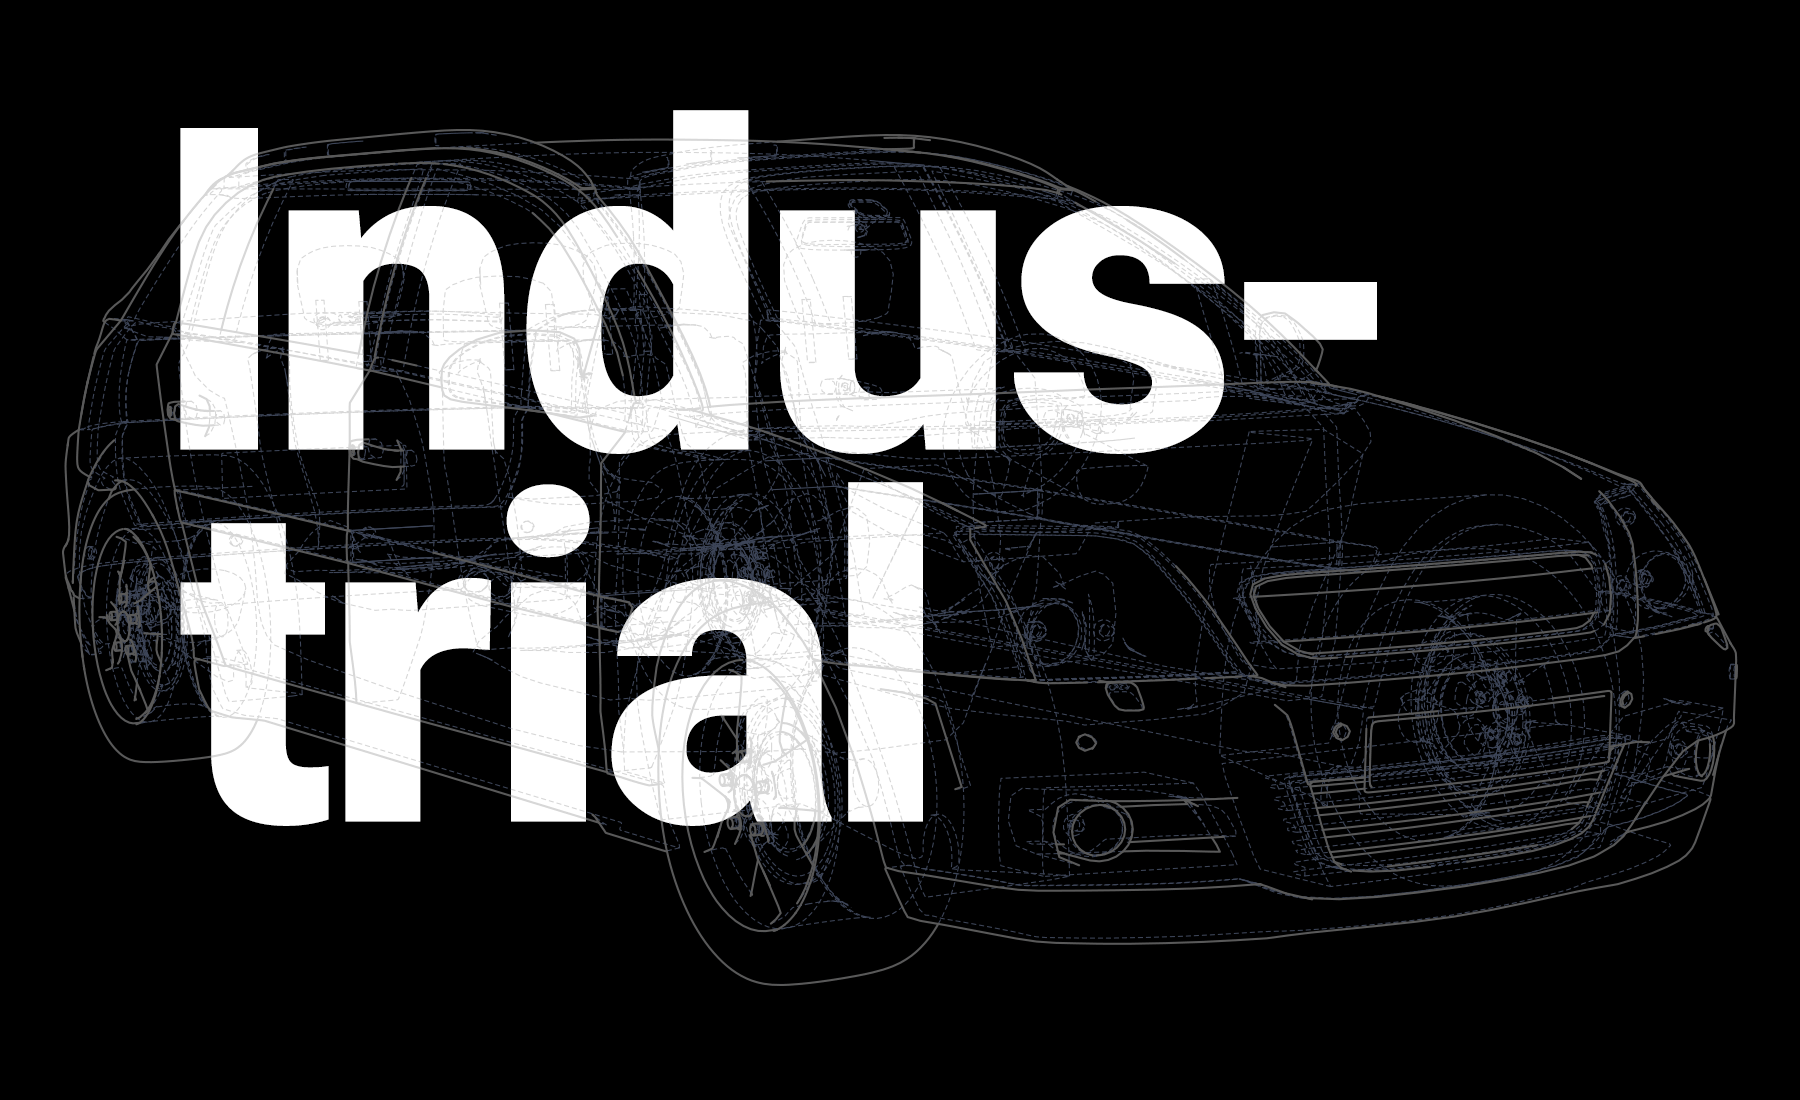 Industrial header